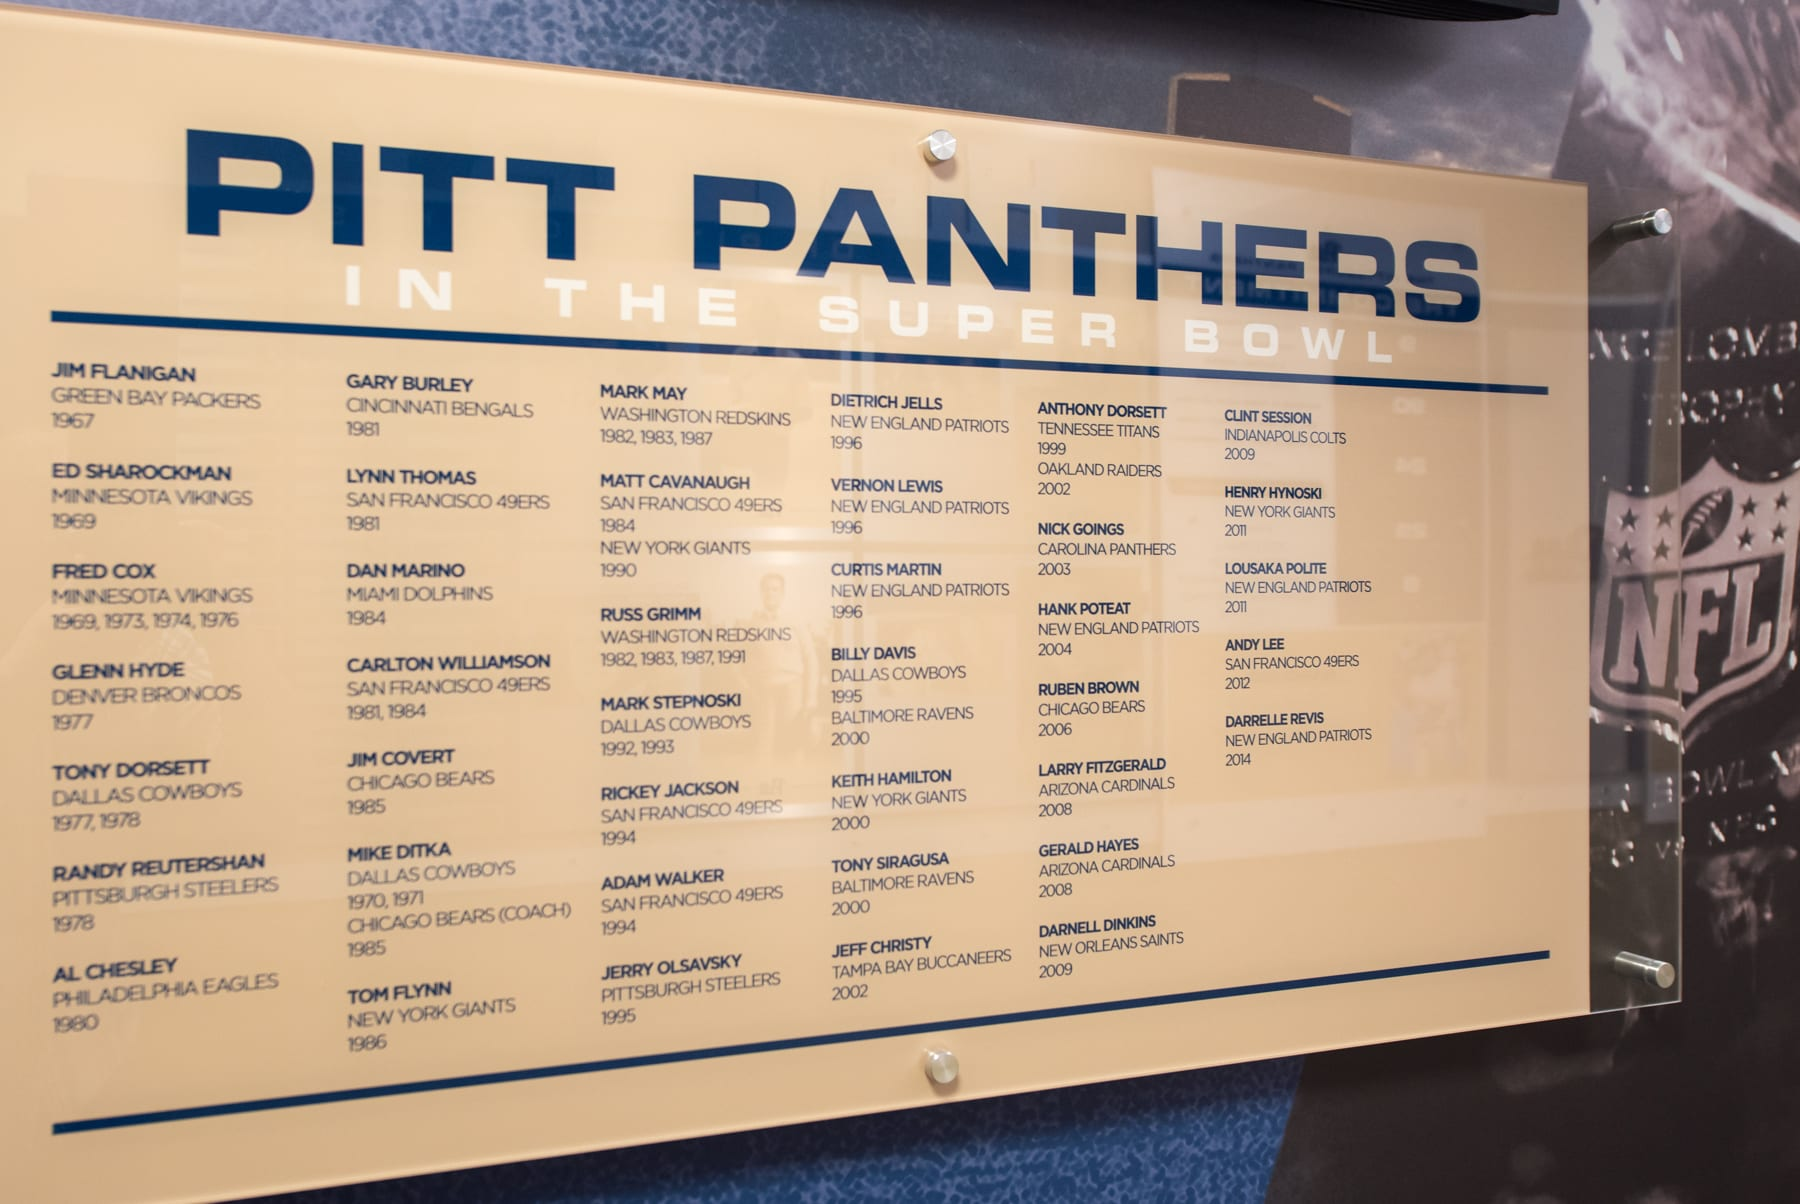 Pitt Panthers in the Super Bowl (Photo credit: Dave DiCello)